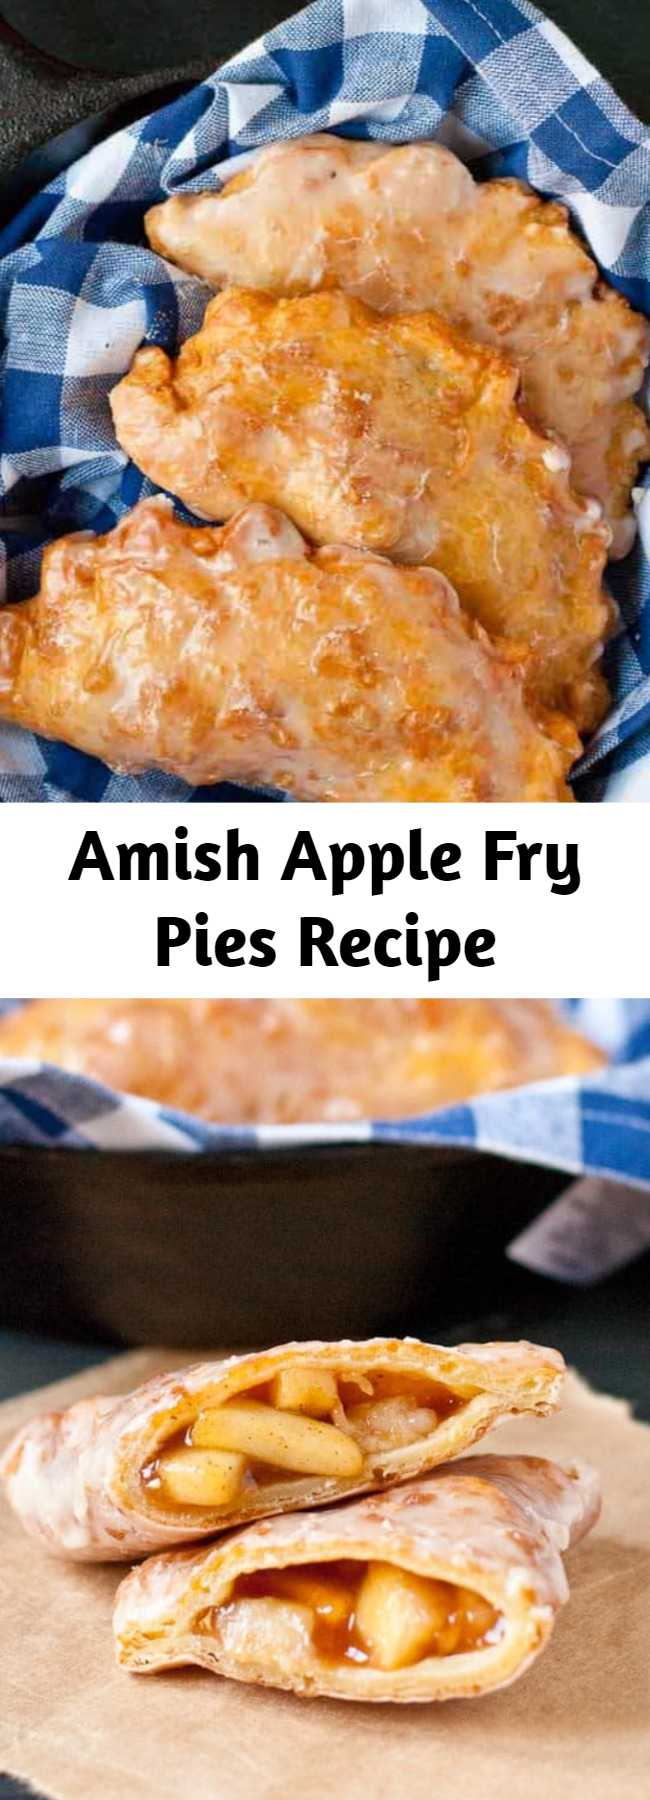 Amish Apple Fry Pies Recipe - These Amish Apple Fry Pies are irresistible. The filling is simple with just a hint of spice. The crust is tender and flaky and just a little crunchy. And the glaze? It dries into a crackly sweet coating that seals in all the goodness.